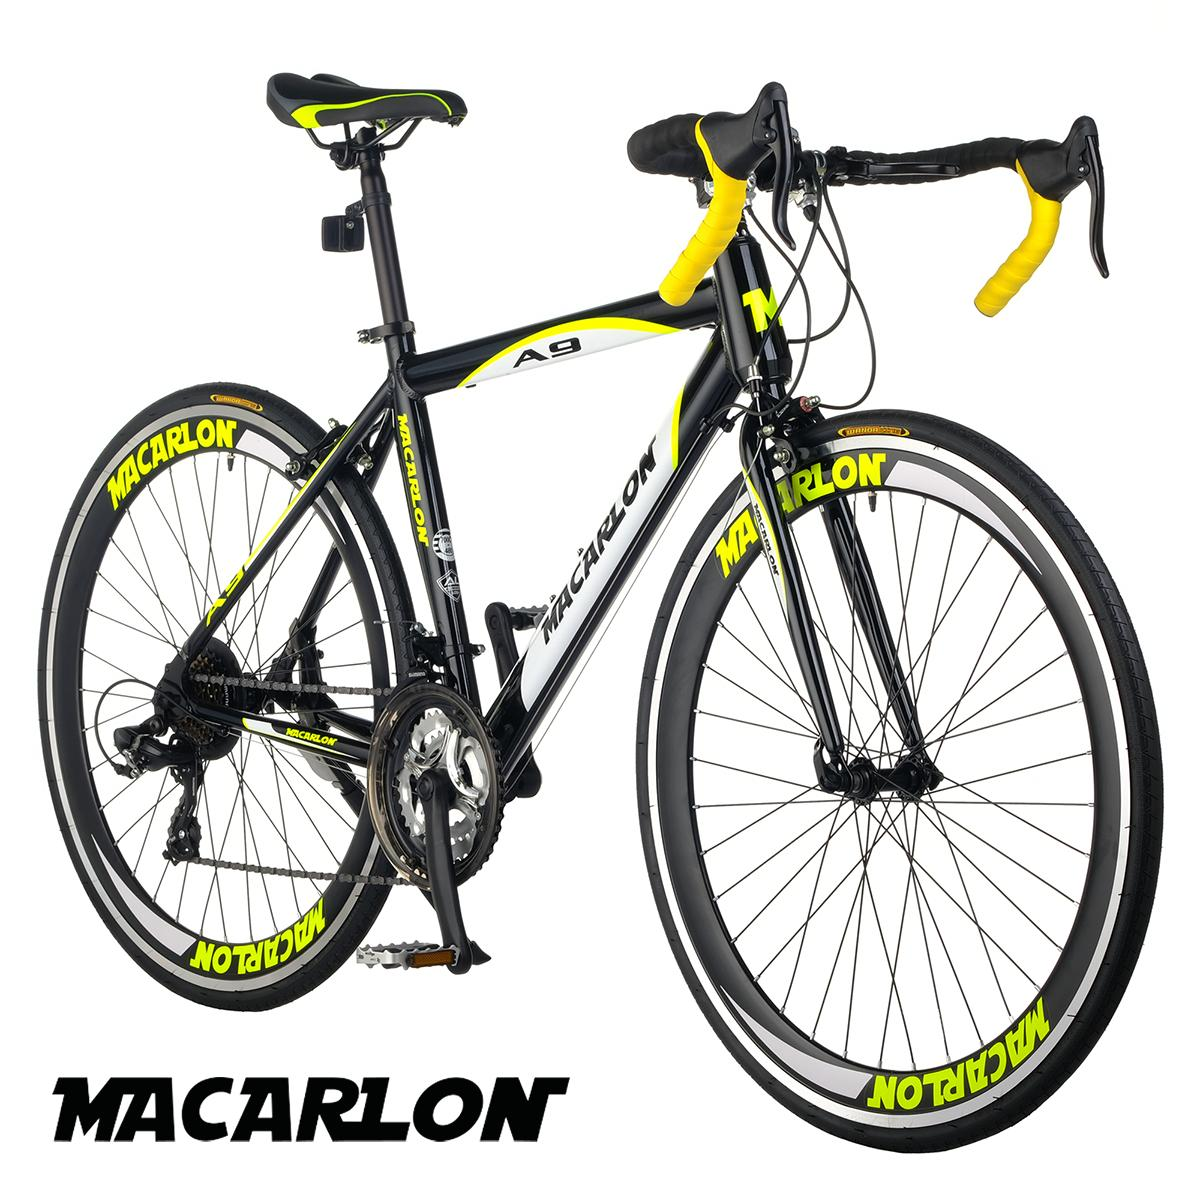 Macarlon A9 700C Shimano 21-Speed Alloy Road Bike (Satin Black/Neon Yellow)